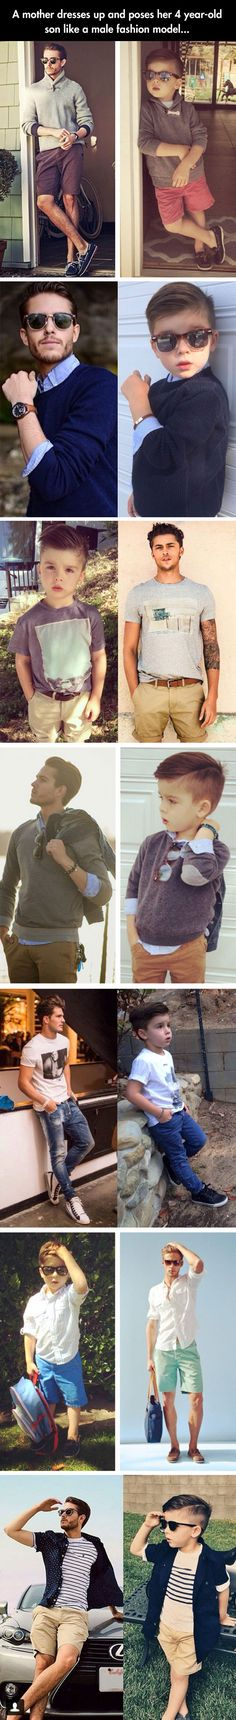 Little boy's fashion, kid's fashion. You can tell this kid will be famous and if not, extremely popular Cute Kids, Cute Babies, Baby Kids, Funny Kids, Little Man, Little People, Fashion Kids, Male Fashion, Swagg